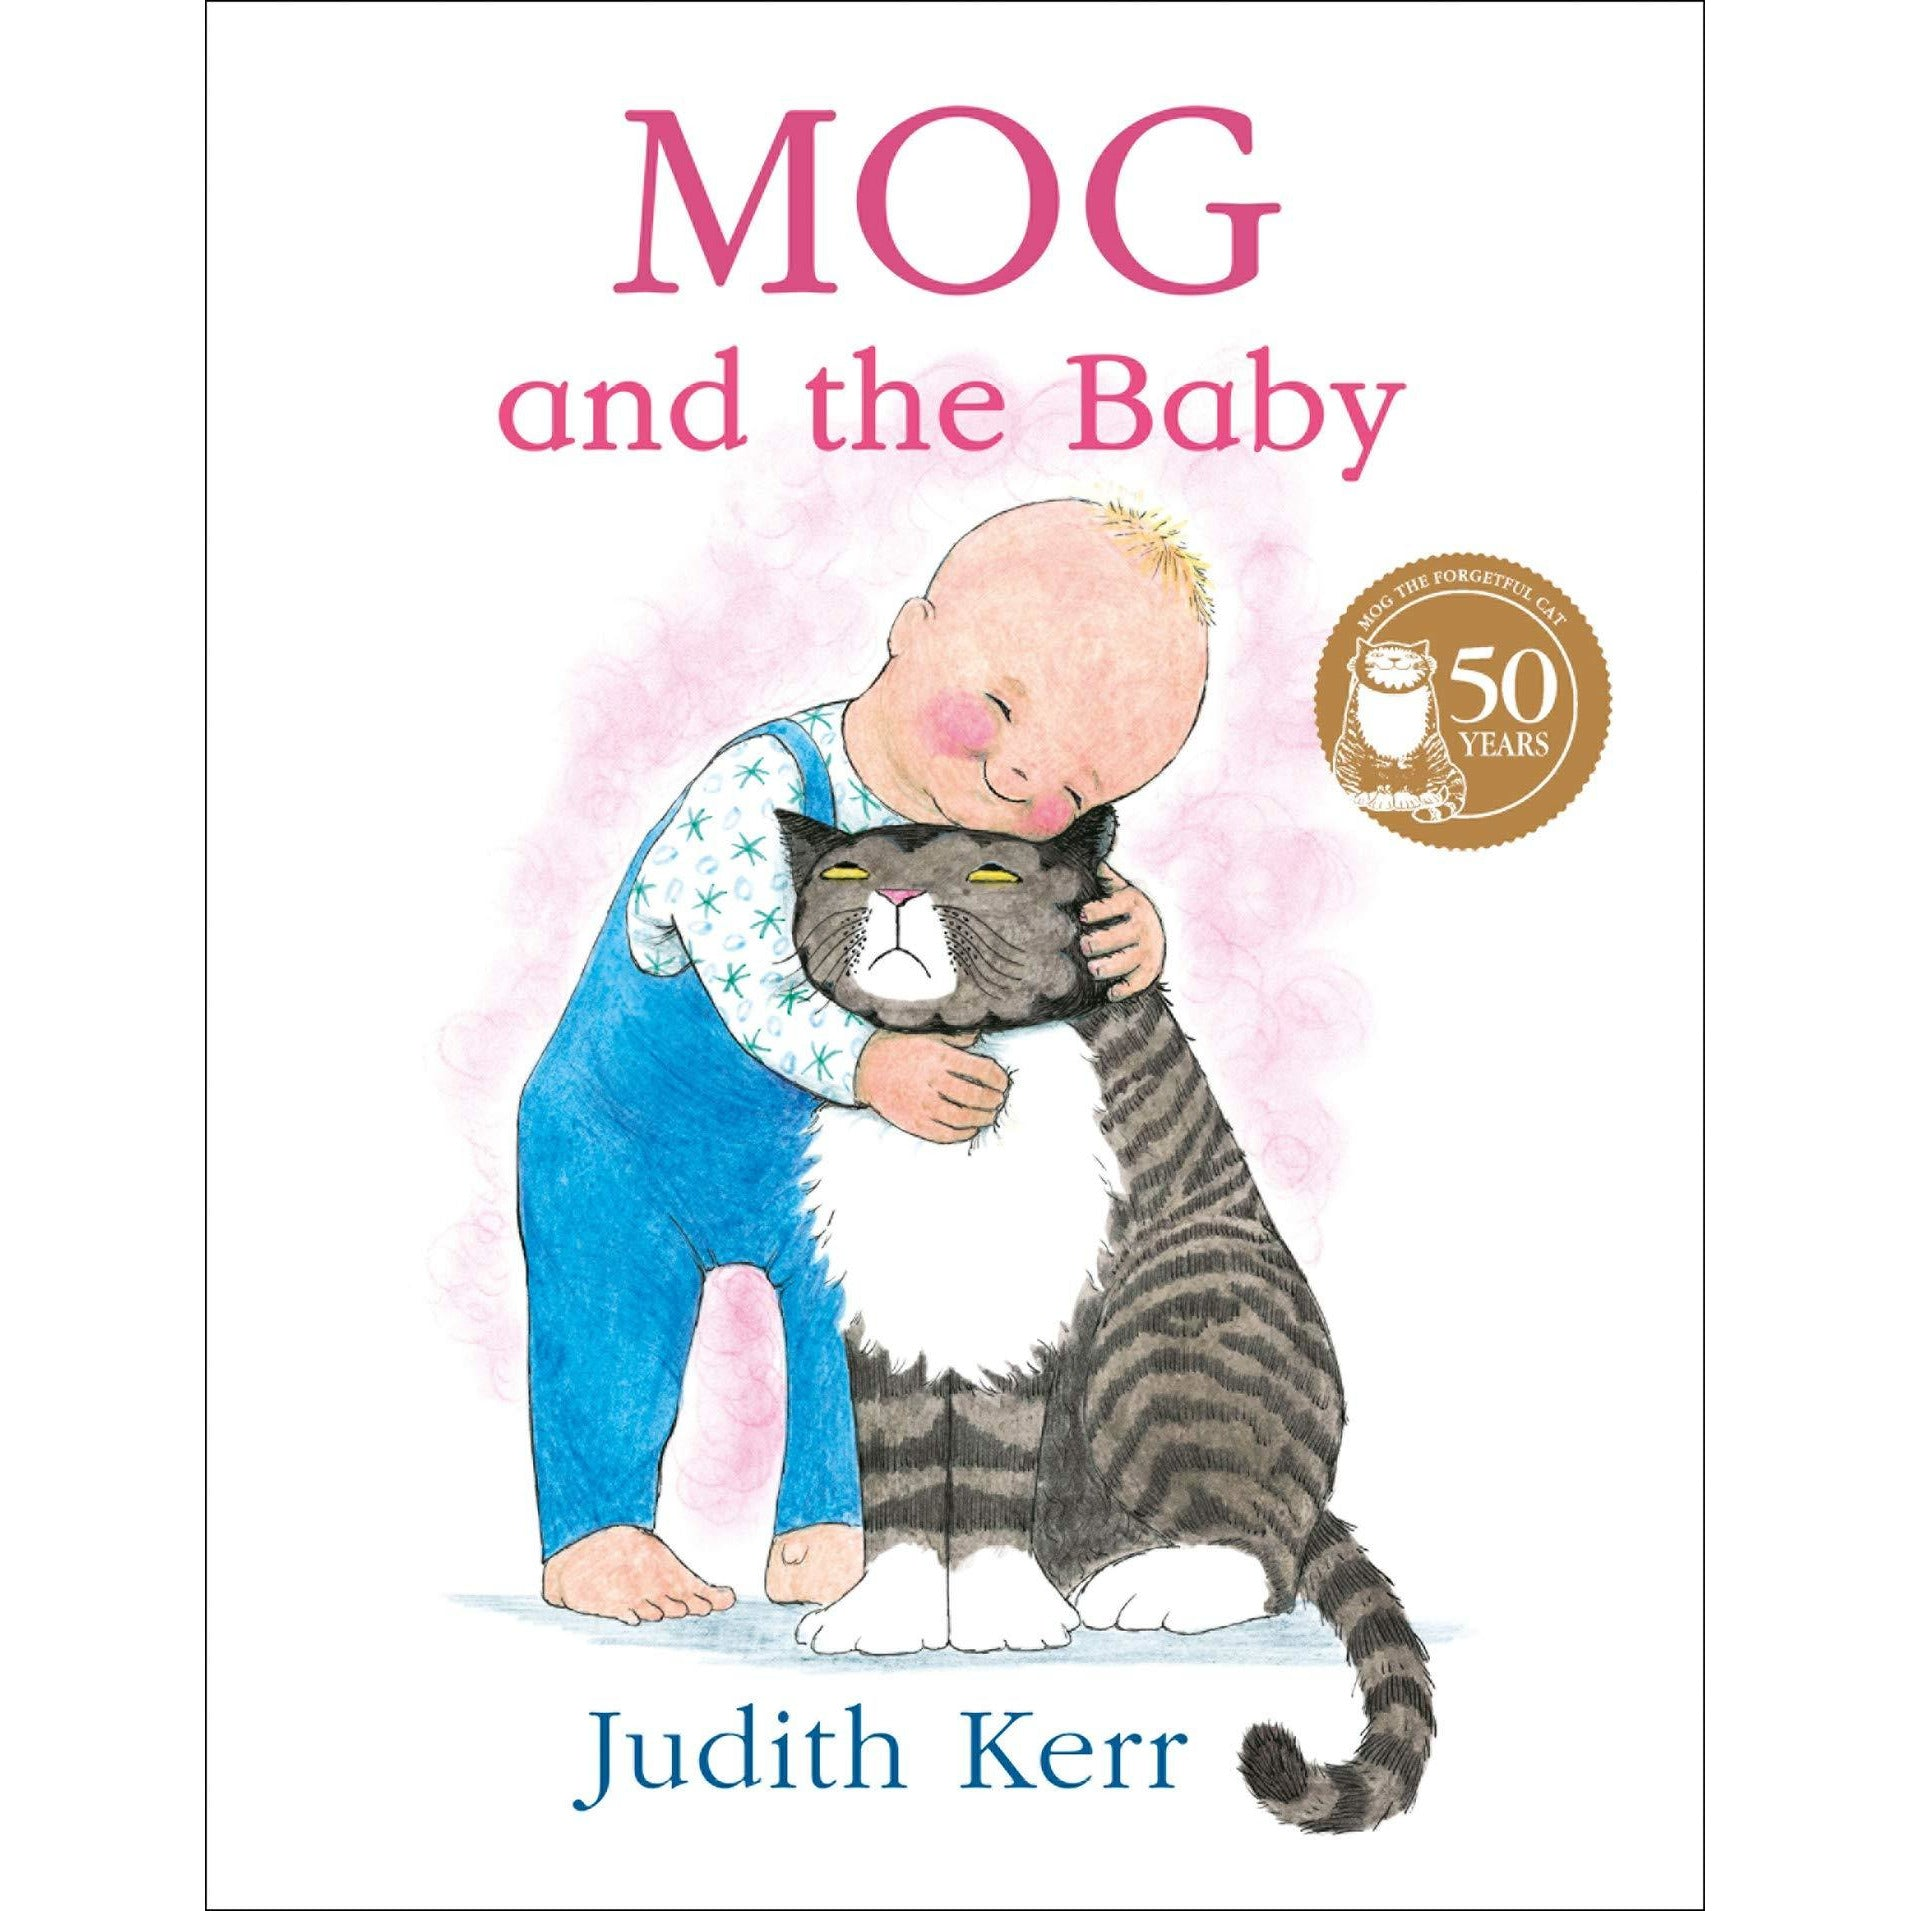 Mog - Mog and the Baby